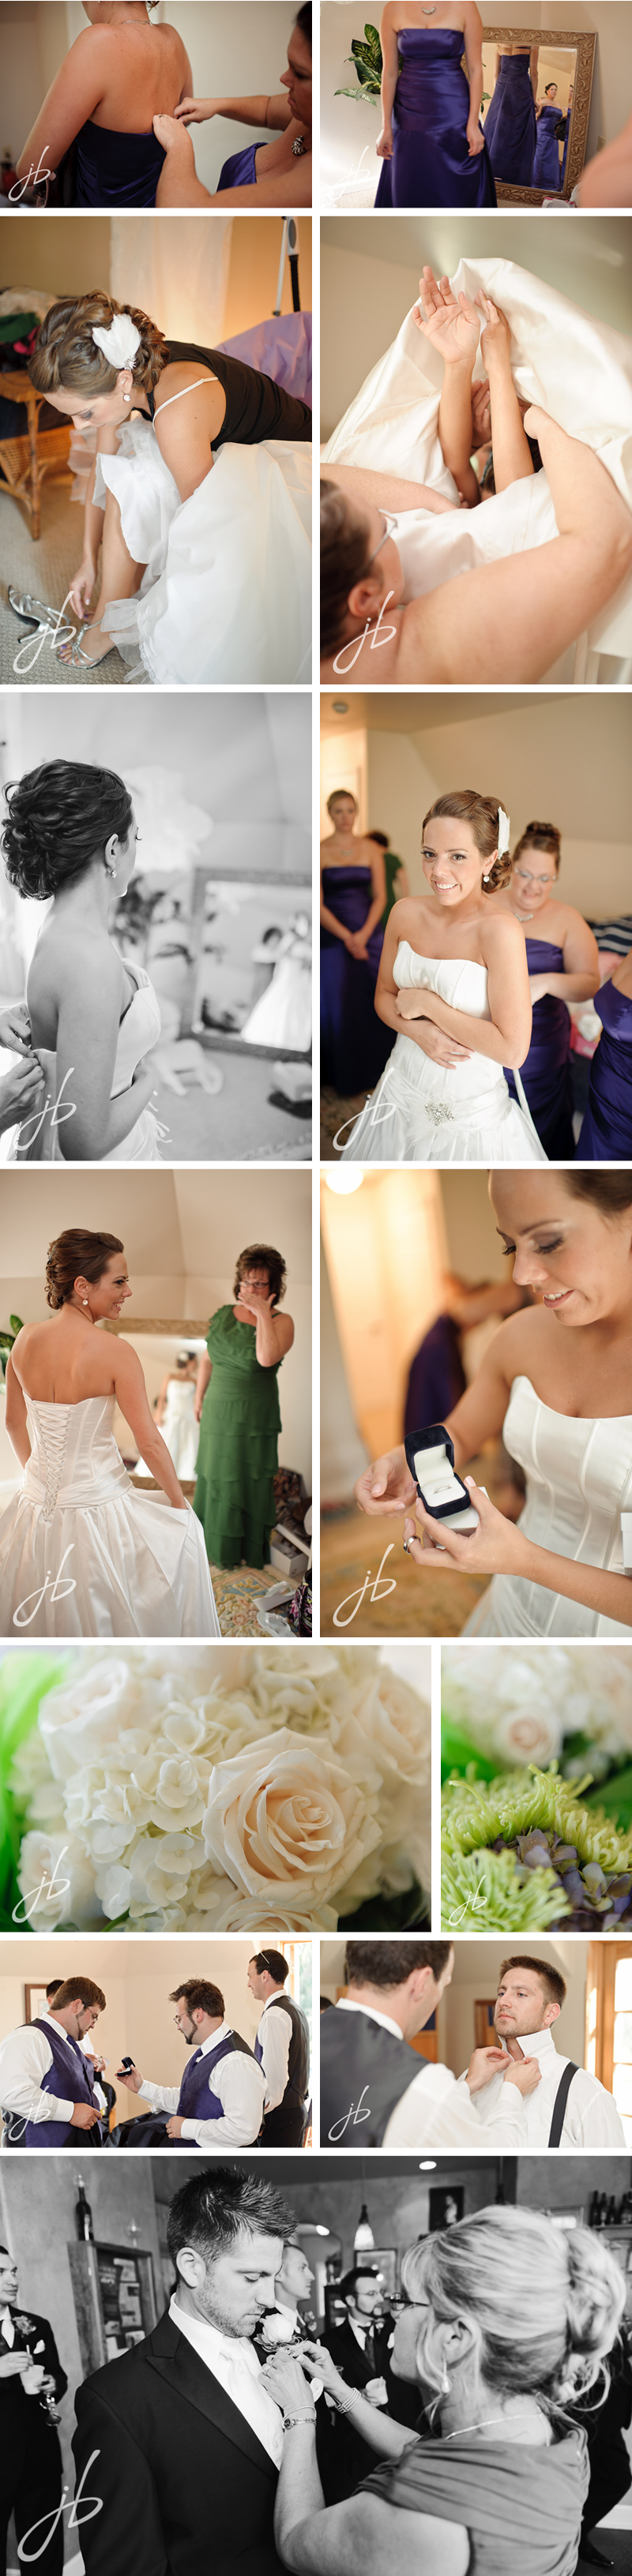 Wrightsville PA wedding photography by Jeremy Bischoff Photography 003